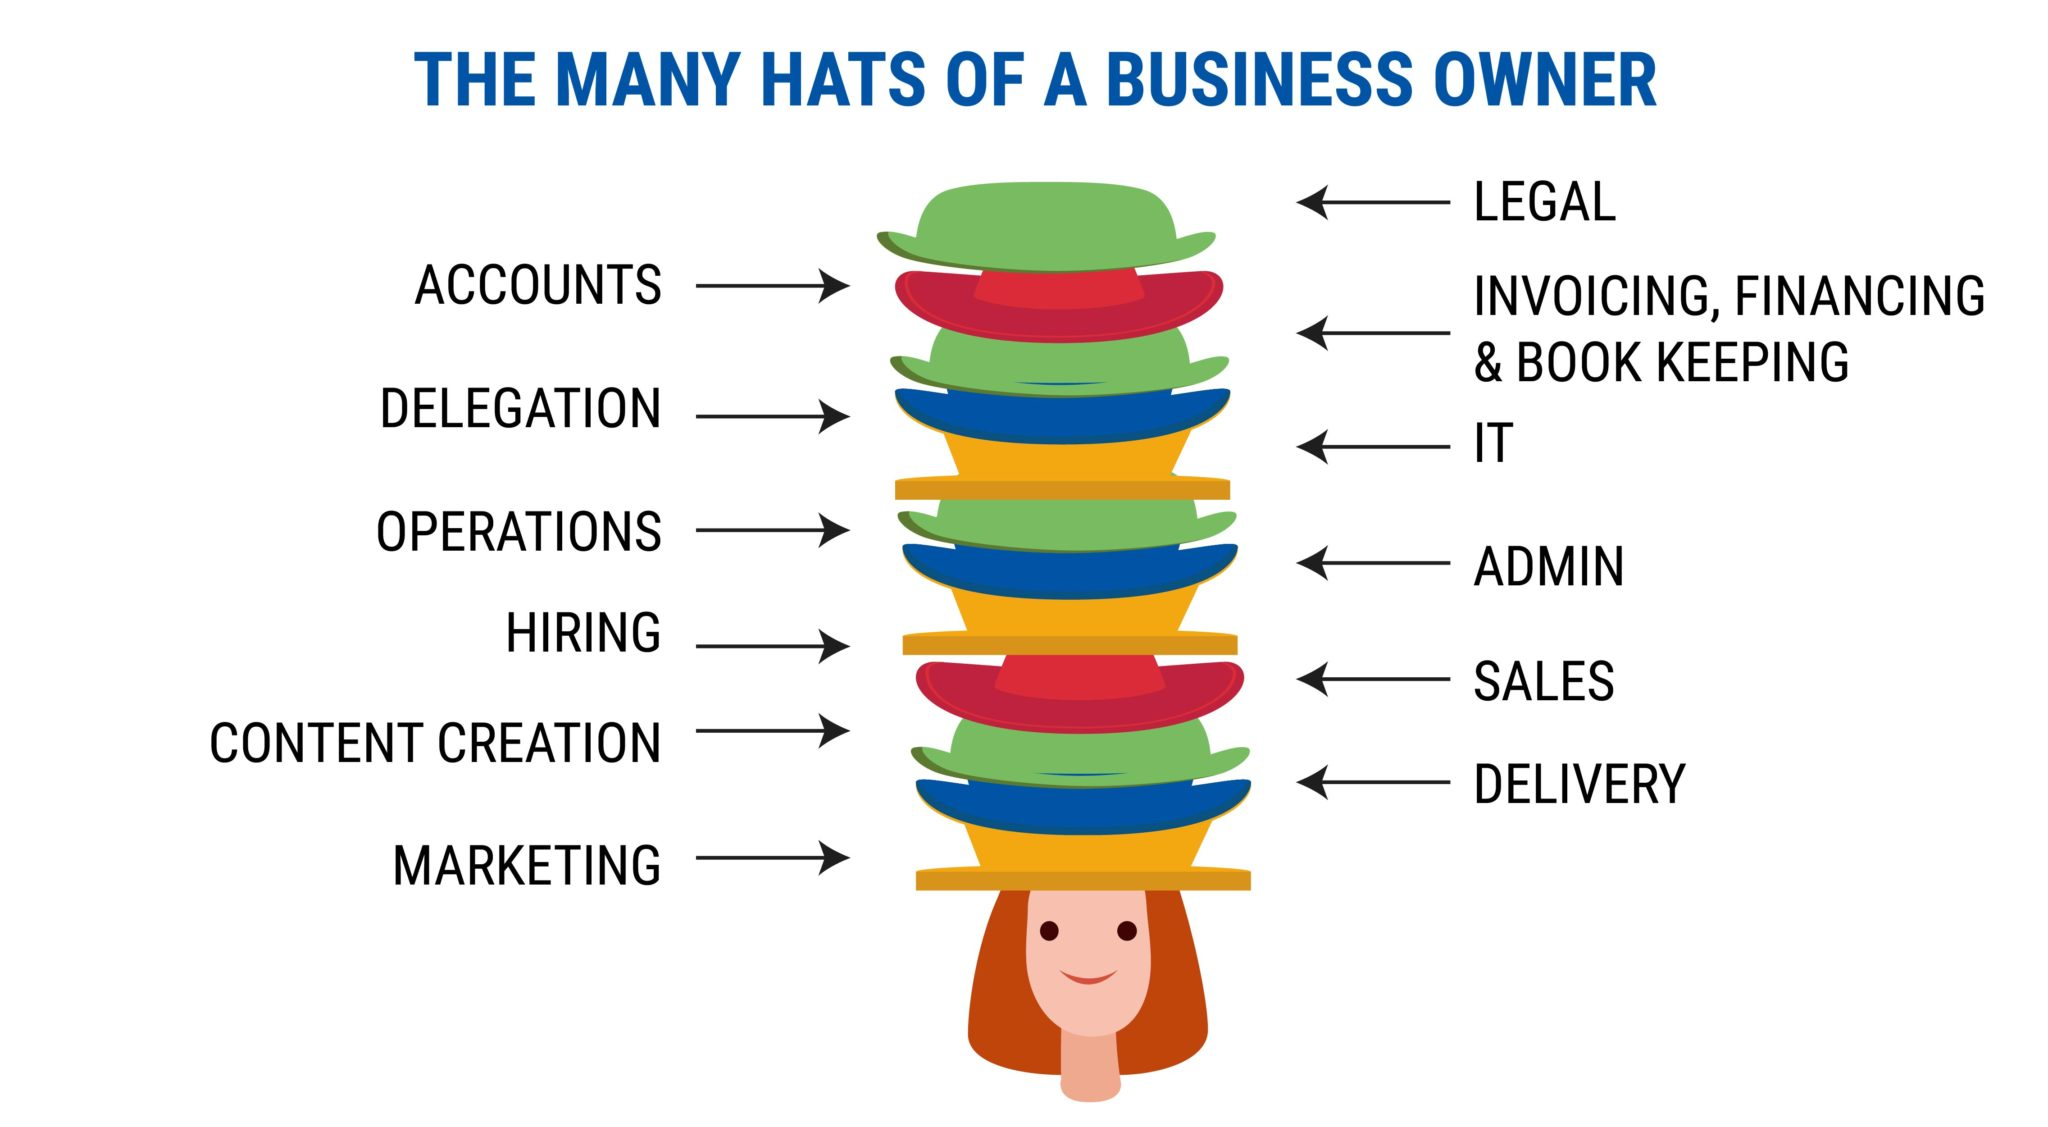 THE MANY HATS OF A BUSINESS OWNER, Starting a Coaching Business While Working Full Time